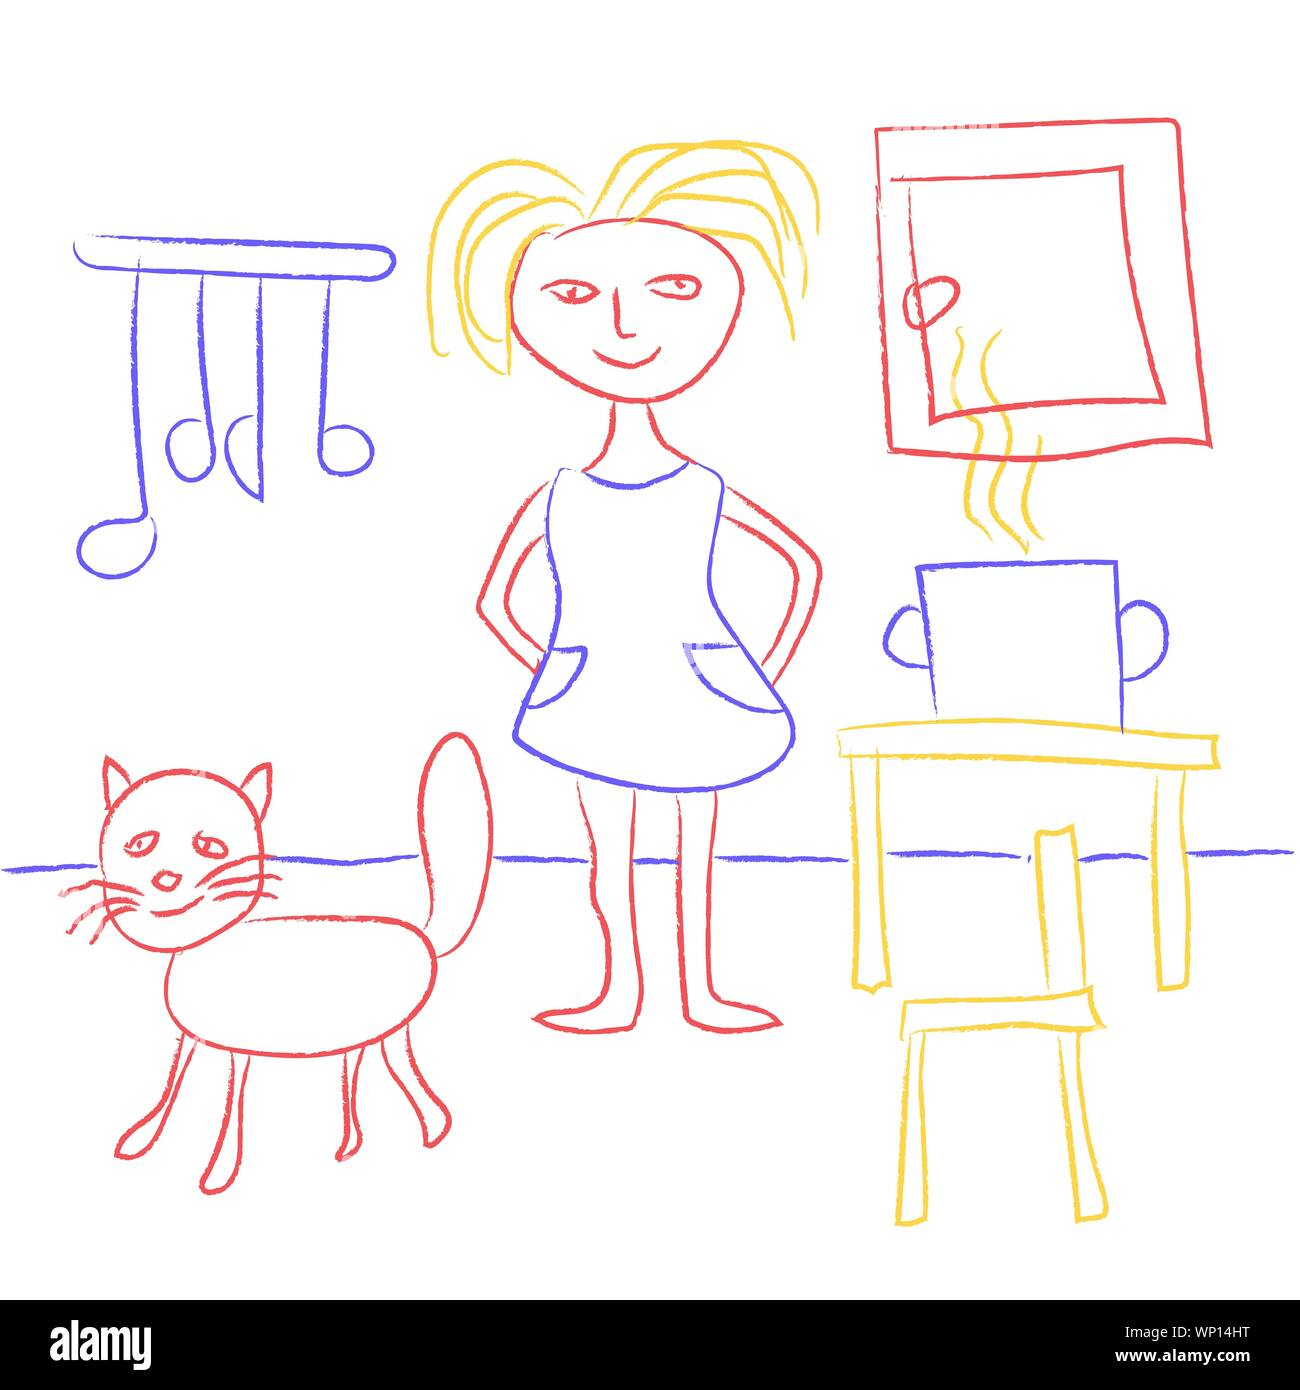 Childs Drawing With Crayons Cute Kids Doodle Depicting A